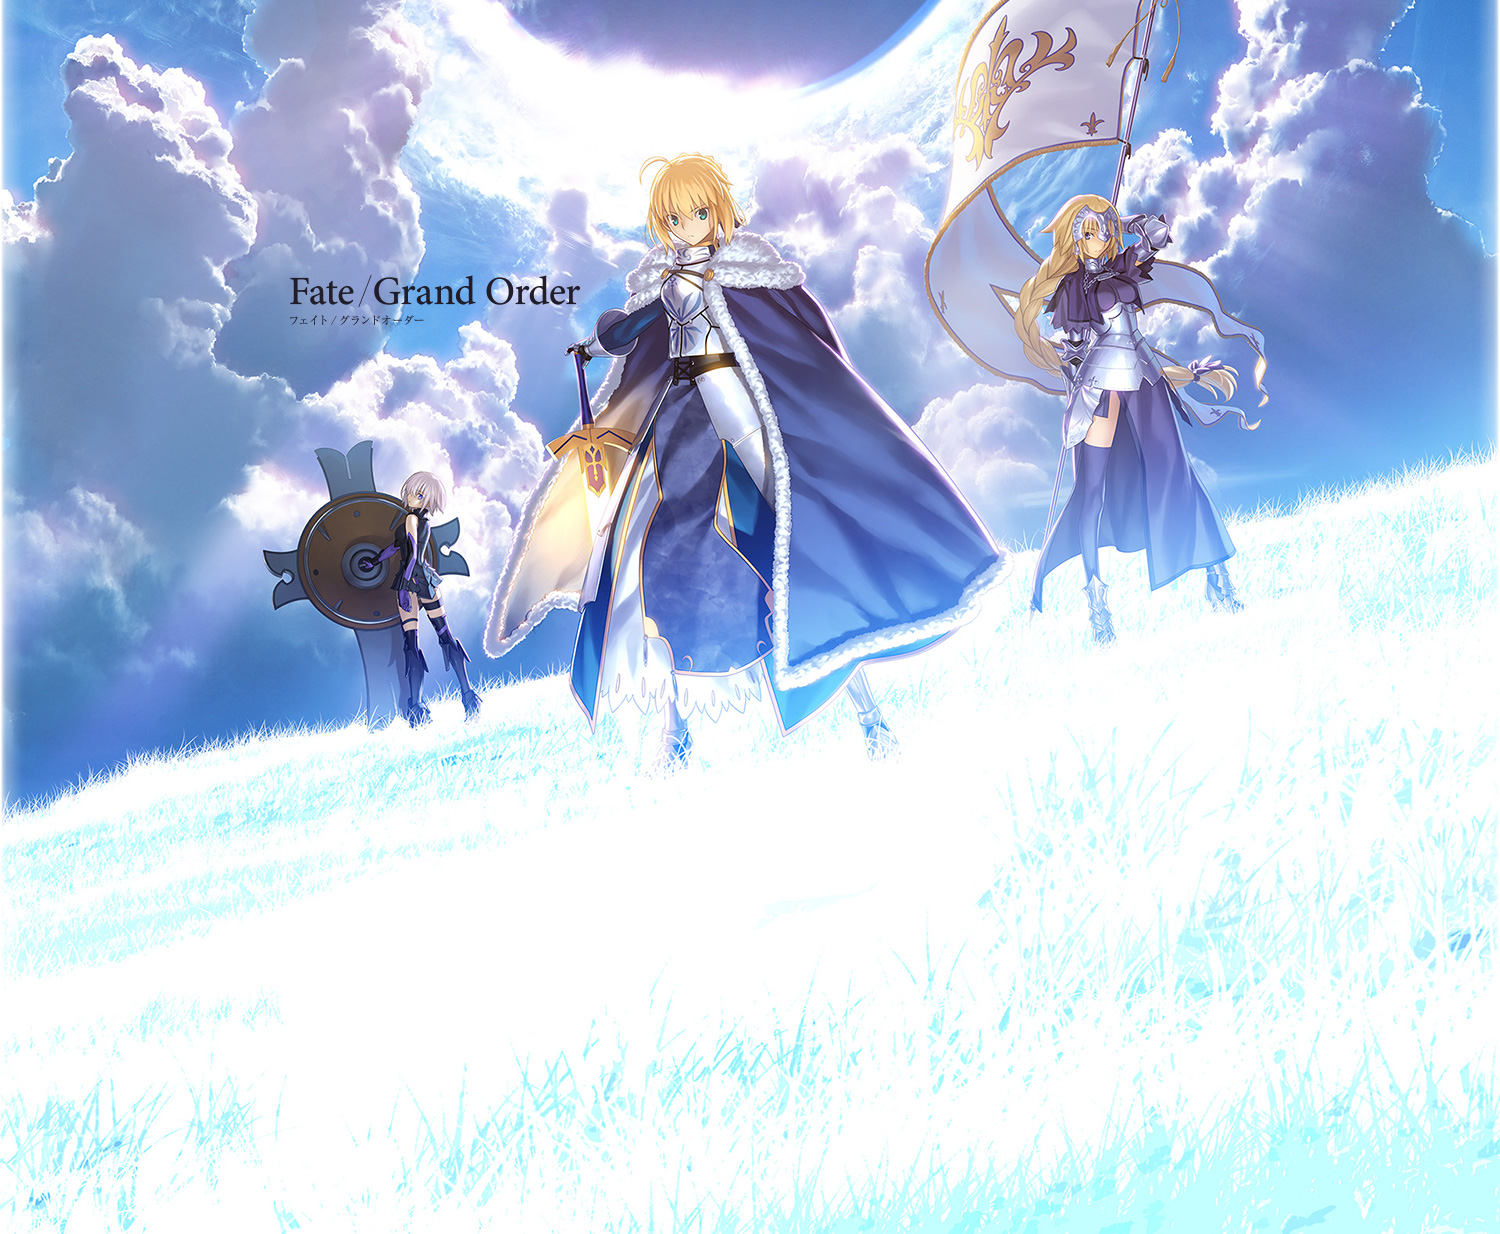 Fate-Grand-Order-Visual-1